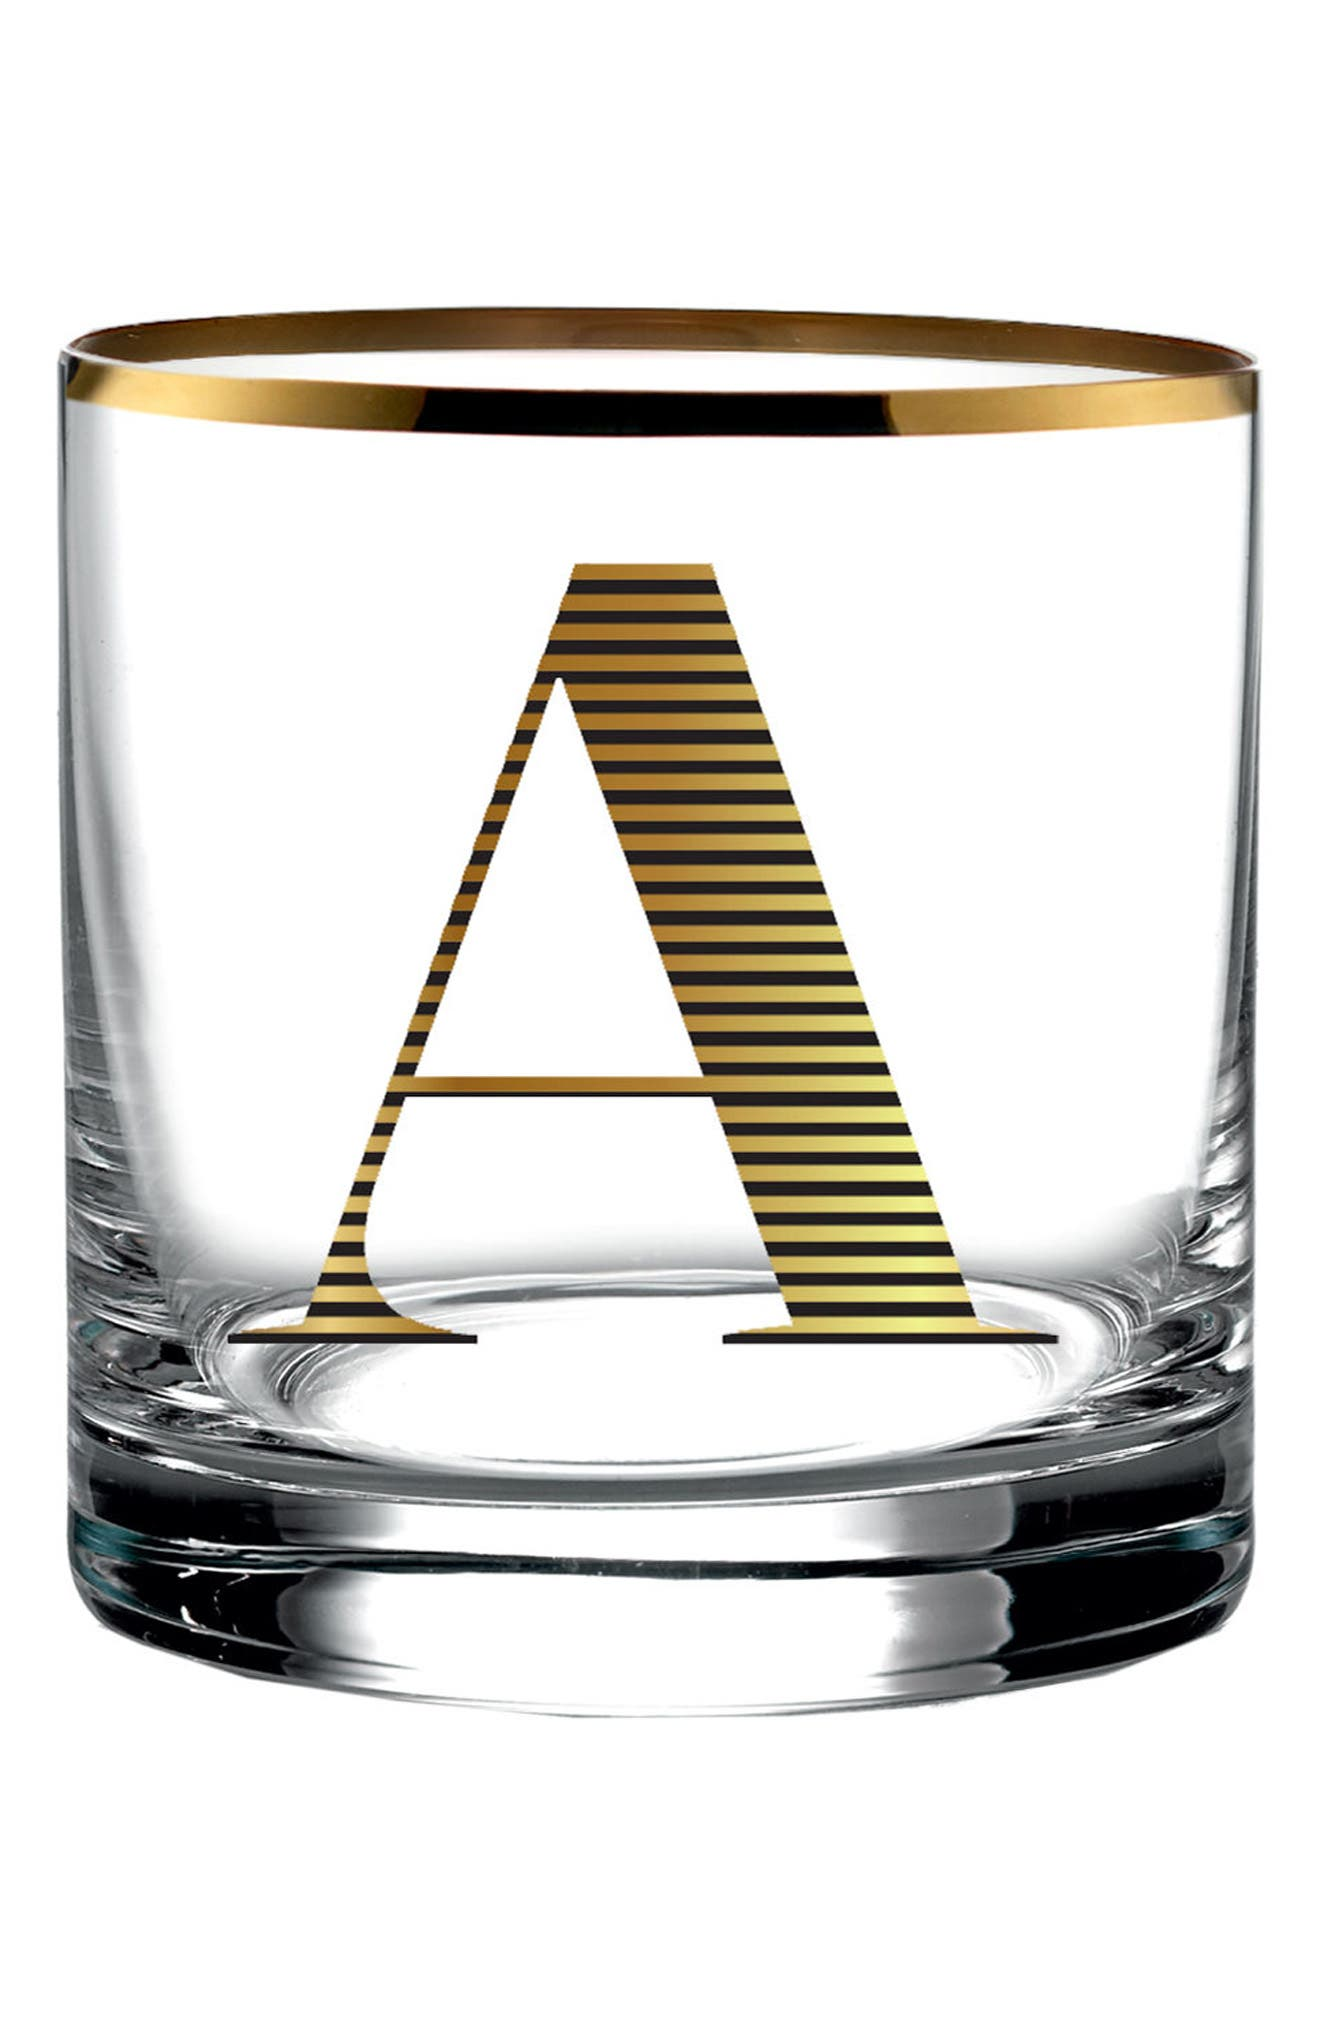 Main Image - American Atelier Monogram Old Fashioned Glass